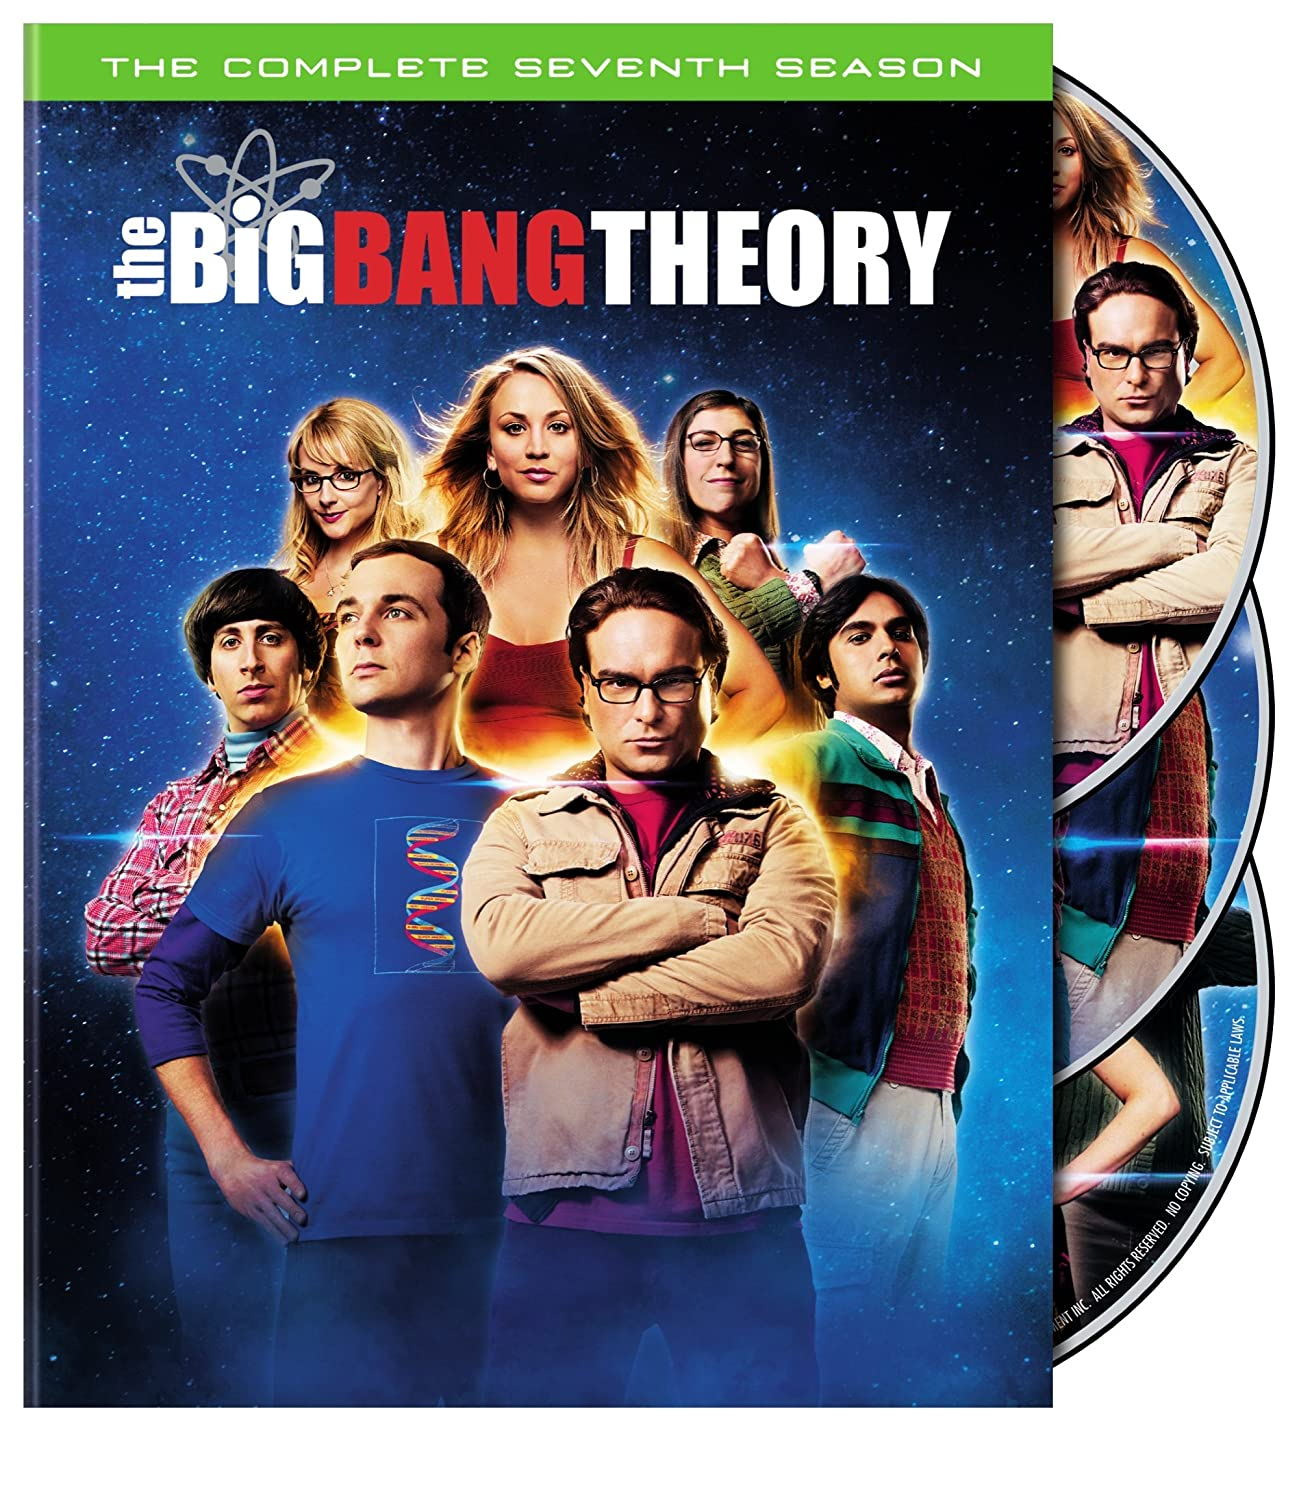 The Big Bang Theory - Season 7 (2013)